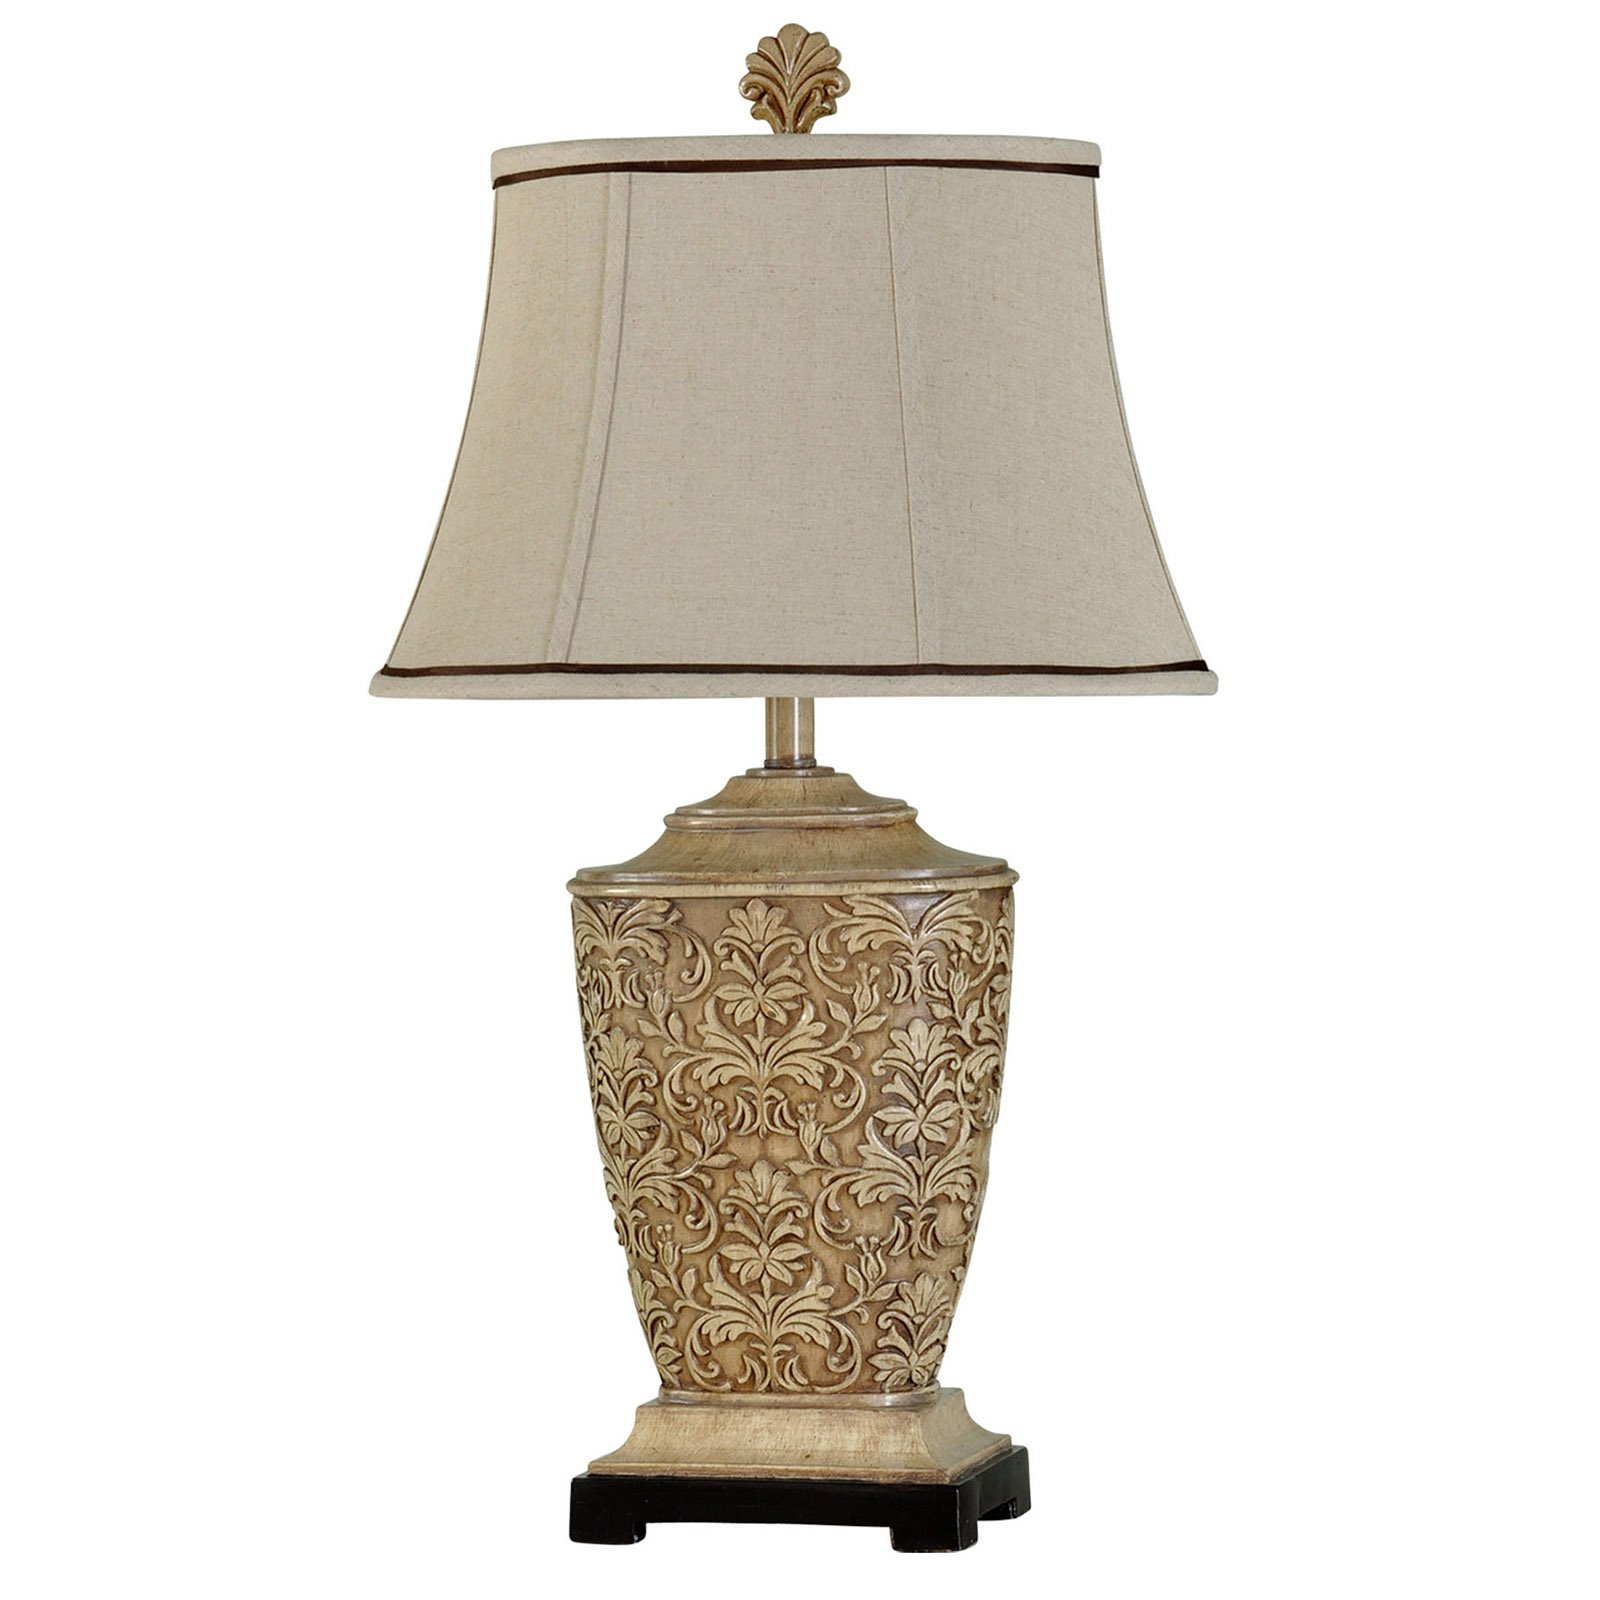 Details About StyleCraft Carved Table Lamp